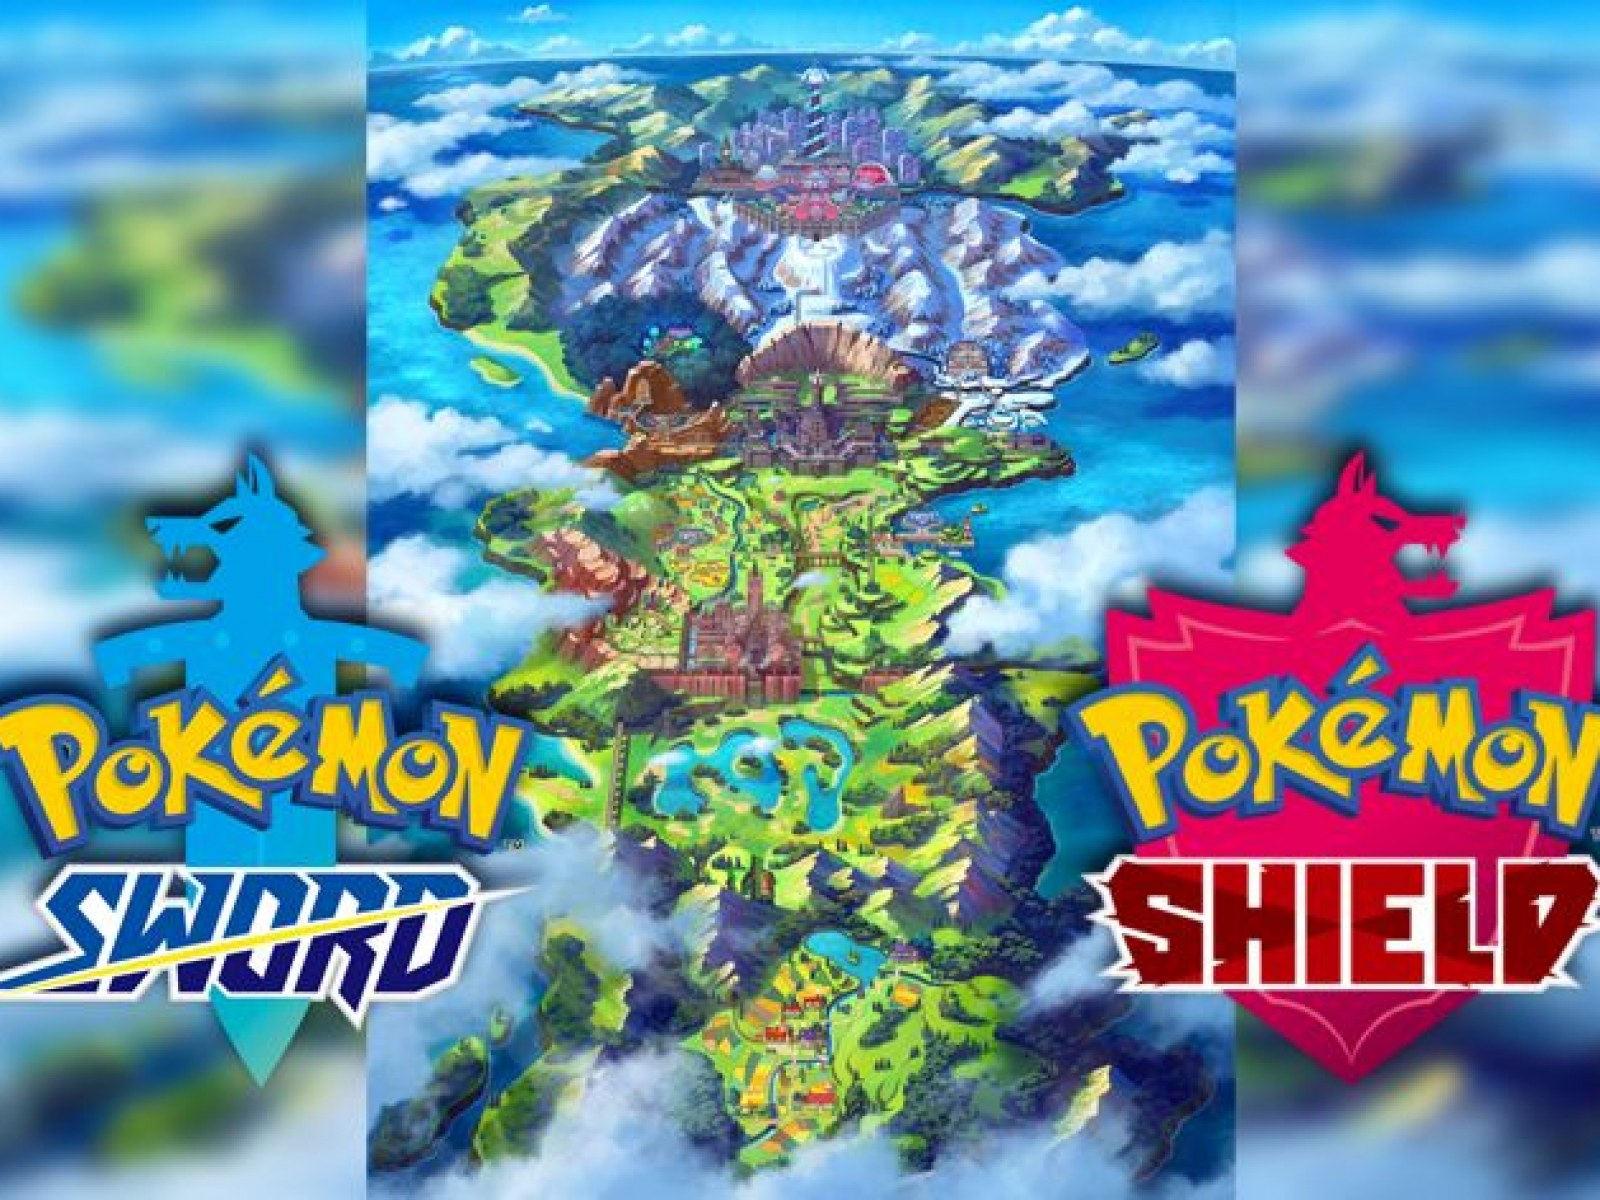 Pokemon Sword And Shield Region Likely Based On The Uk Gym